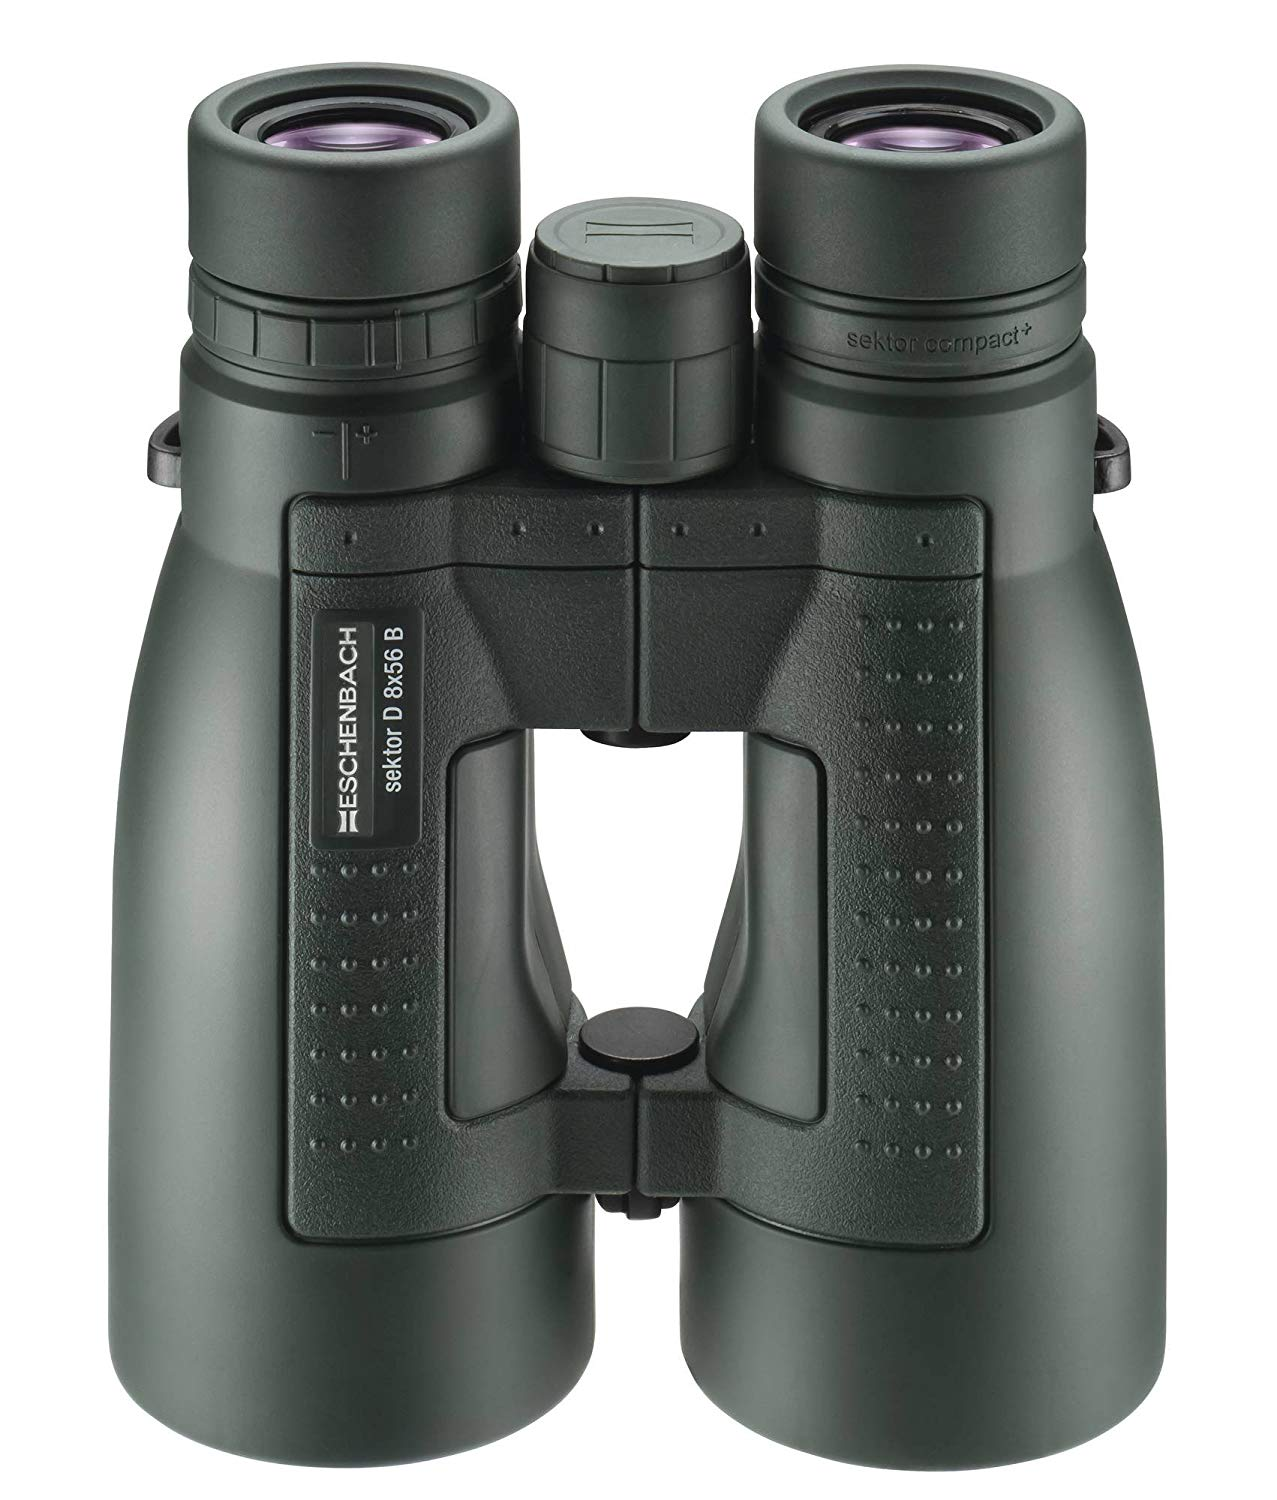 Top 10 Best Low Light Binoculars For Hunting 2021 Reviews 2